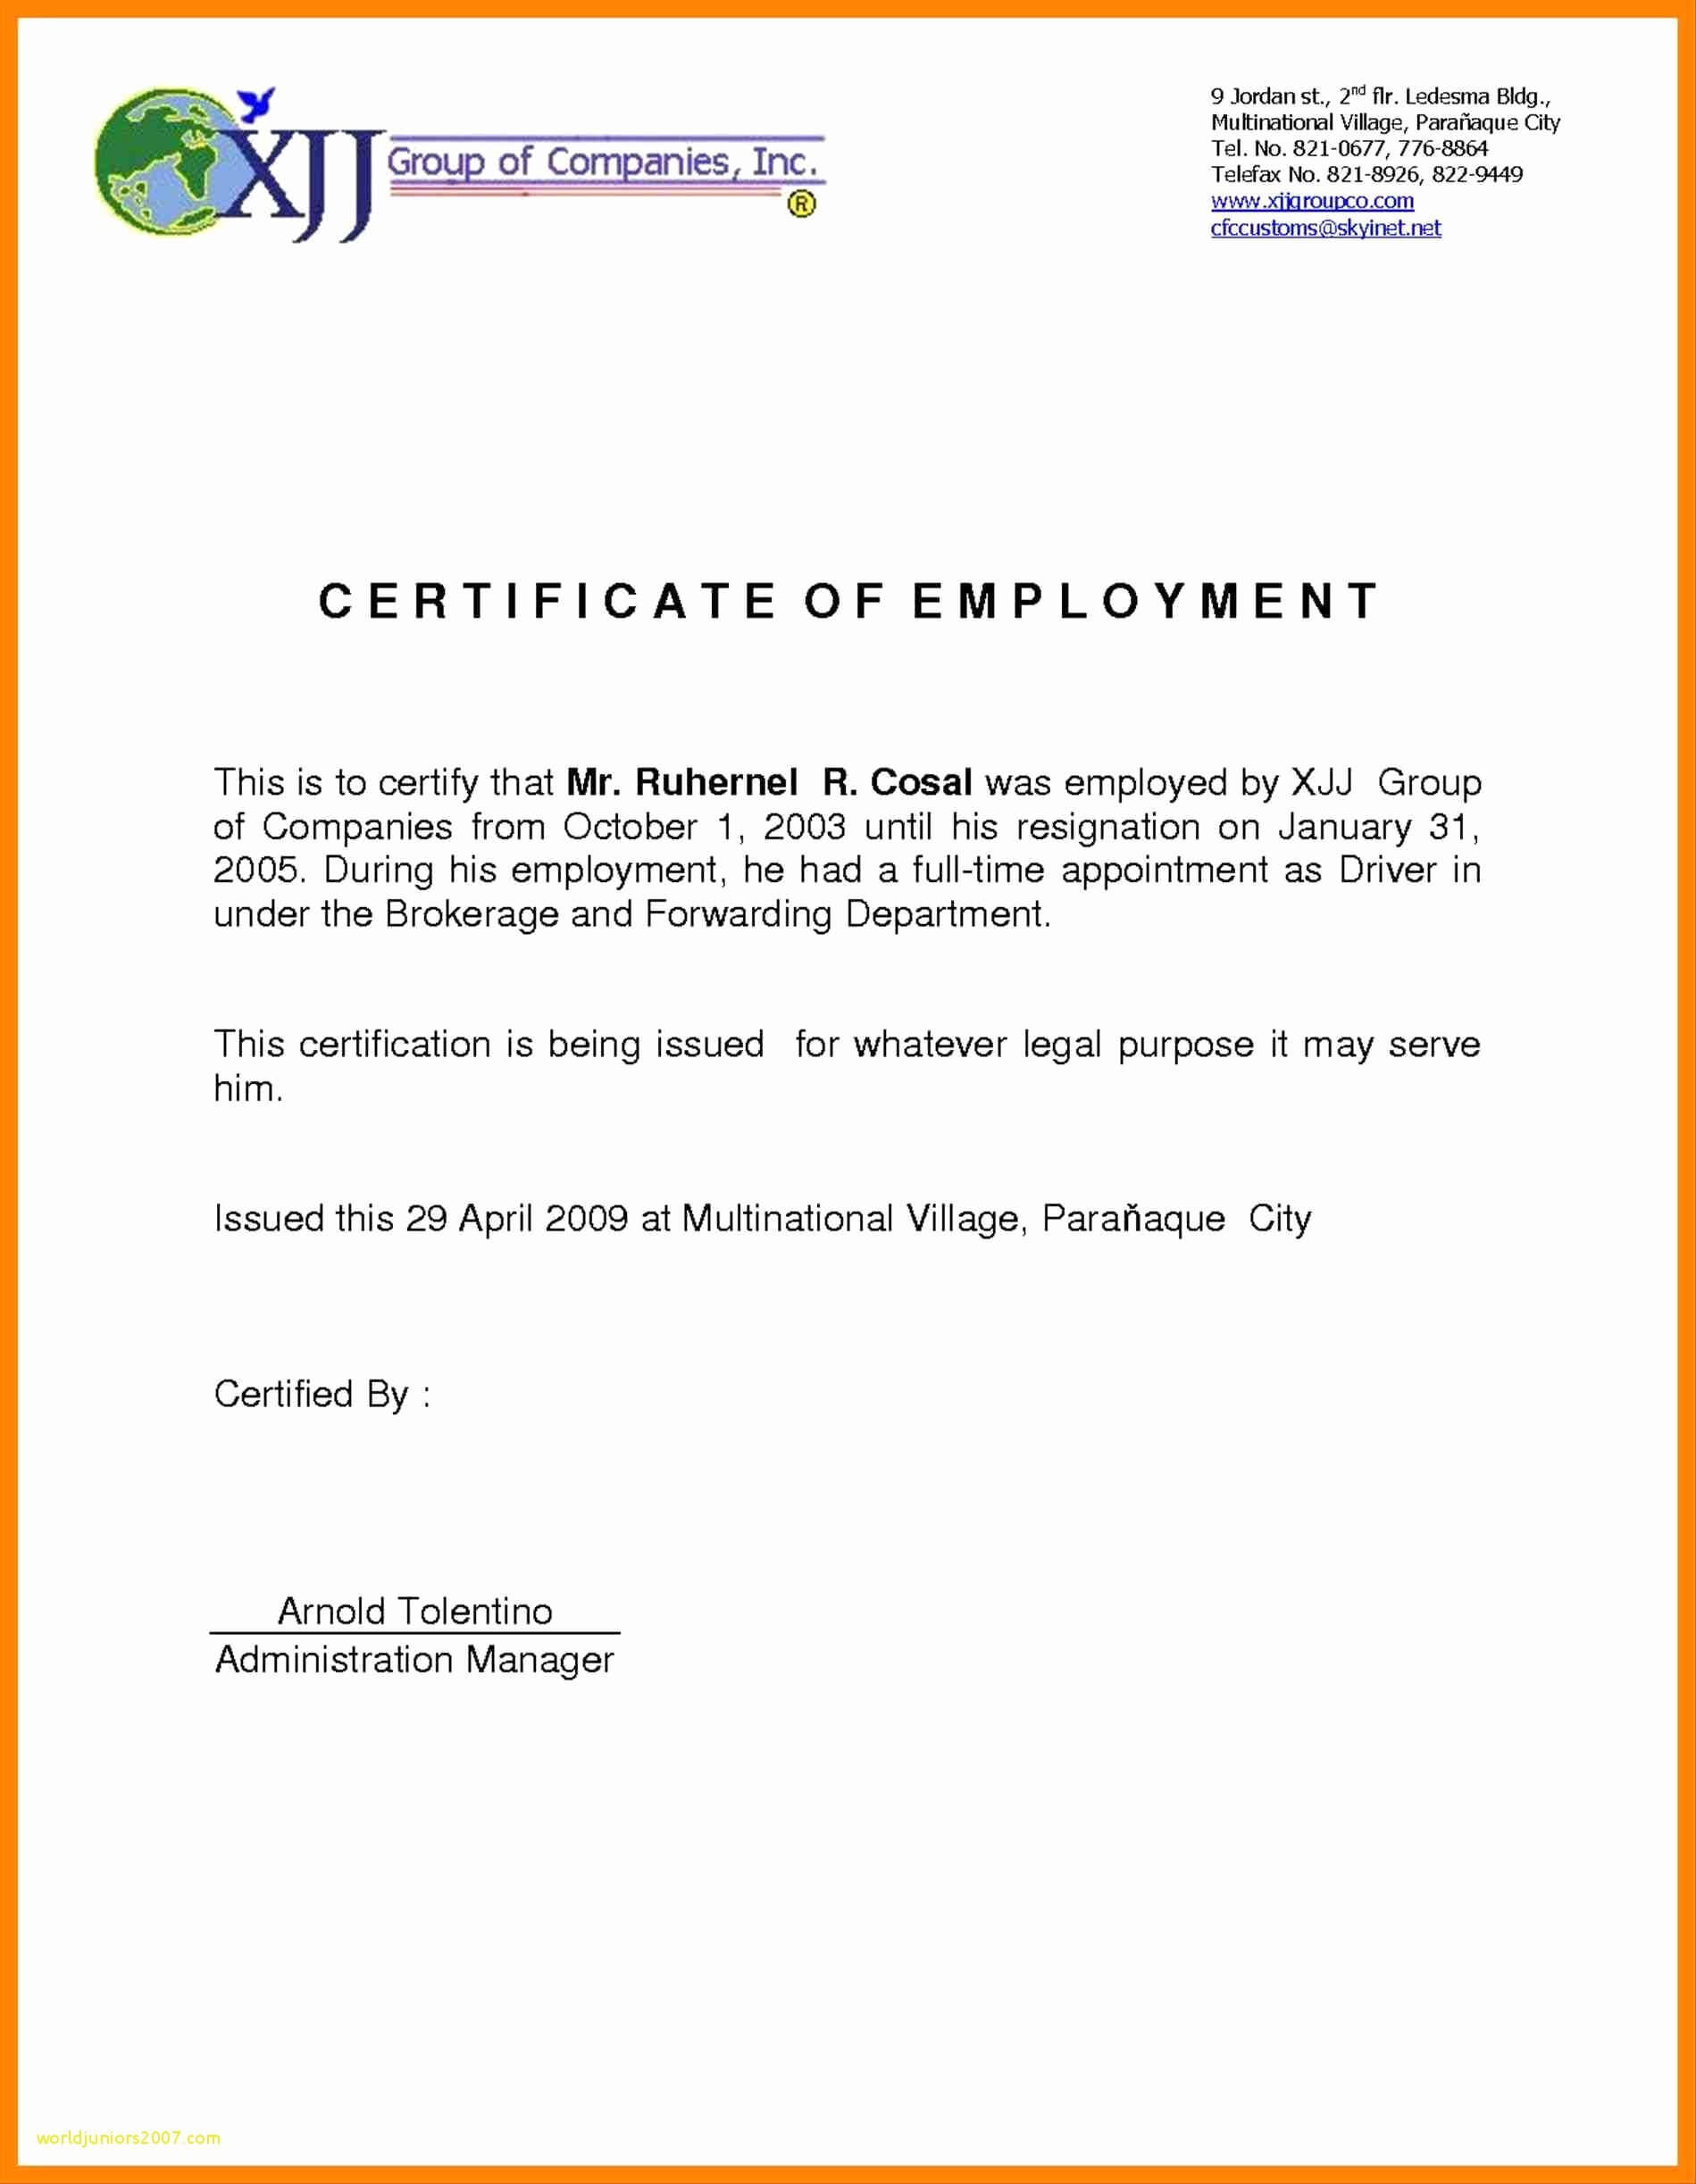 Template Of Certificate Of Employment - Atlantaauctionco with regard to Certificate Of Employment Template